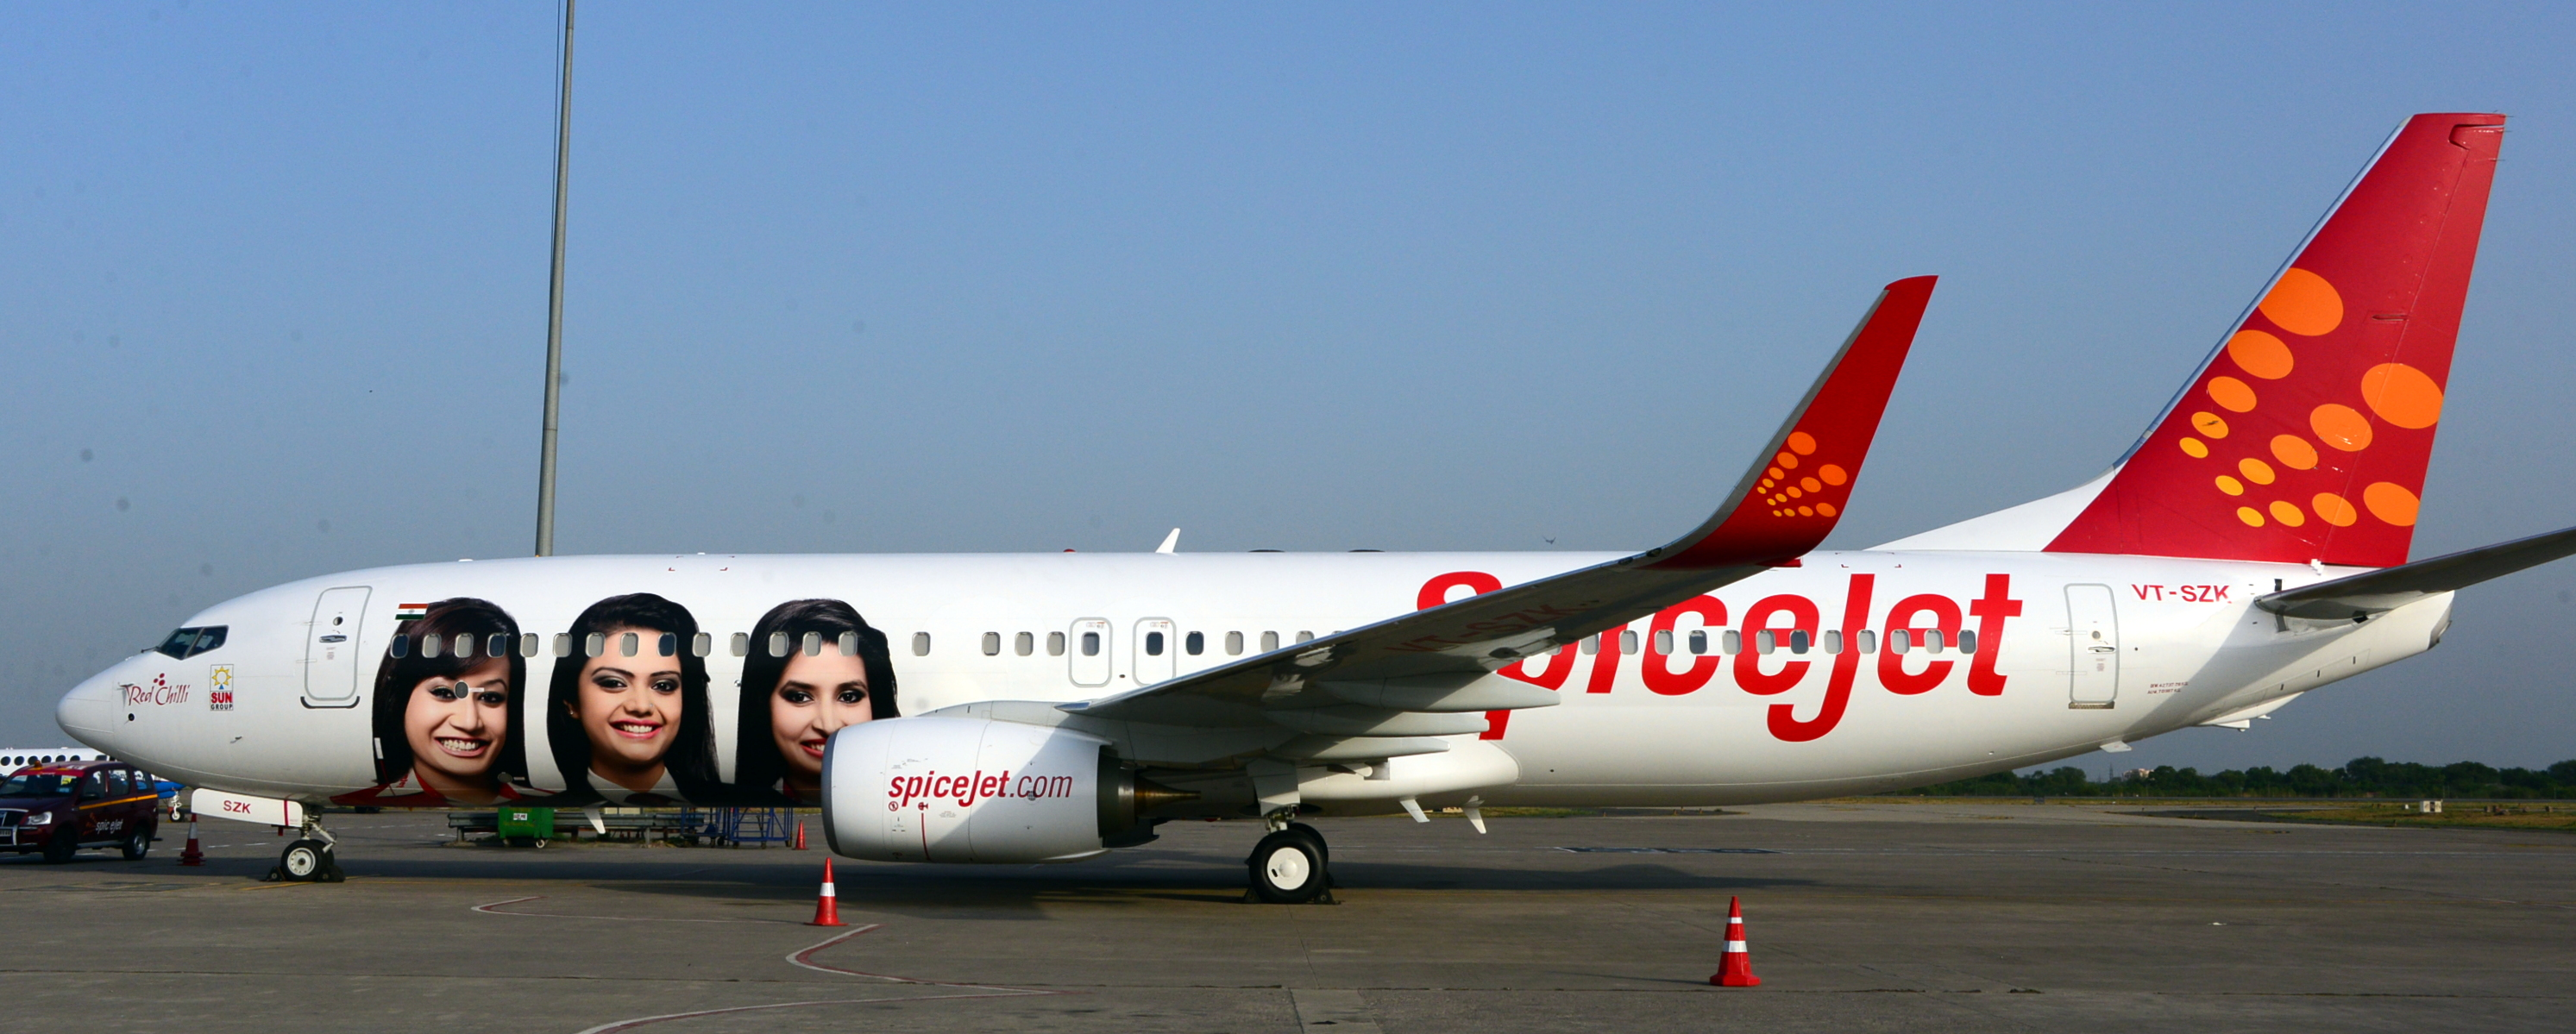 SPICEJET UNVEILS NEW BOEING WITH SPECIAL ���CREW LIVERY��� | Article.